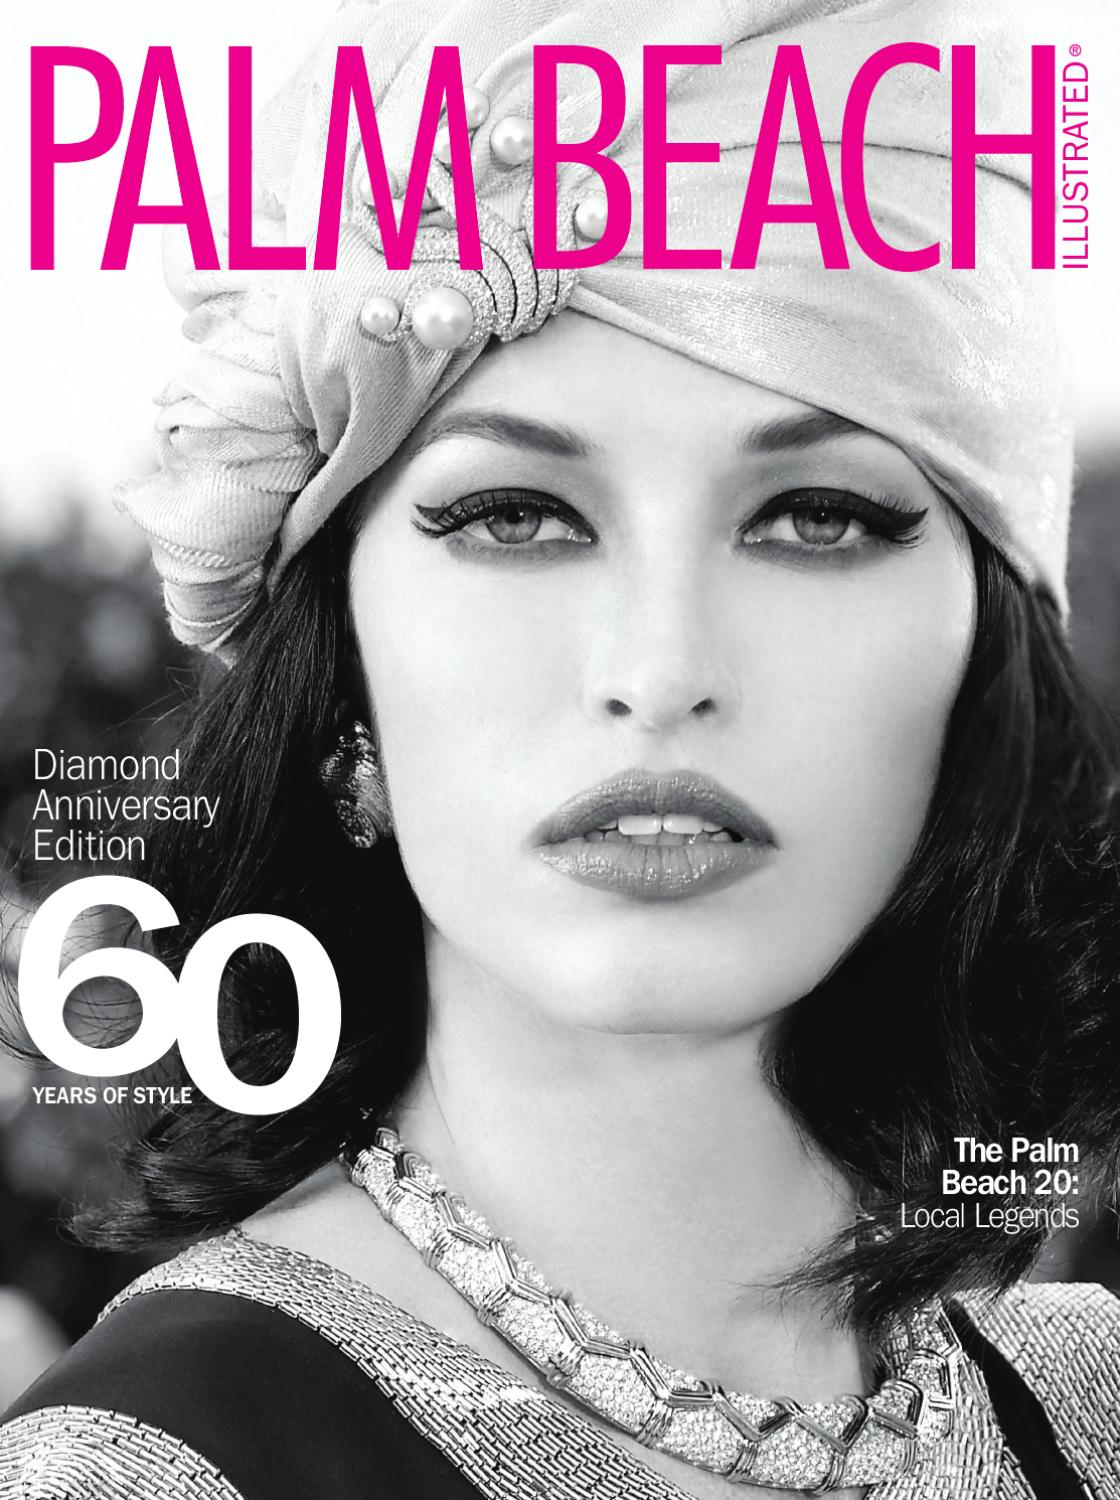 palm beach illustrated 2012 by palm beach media group issuu